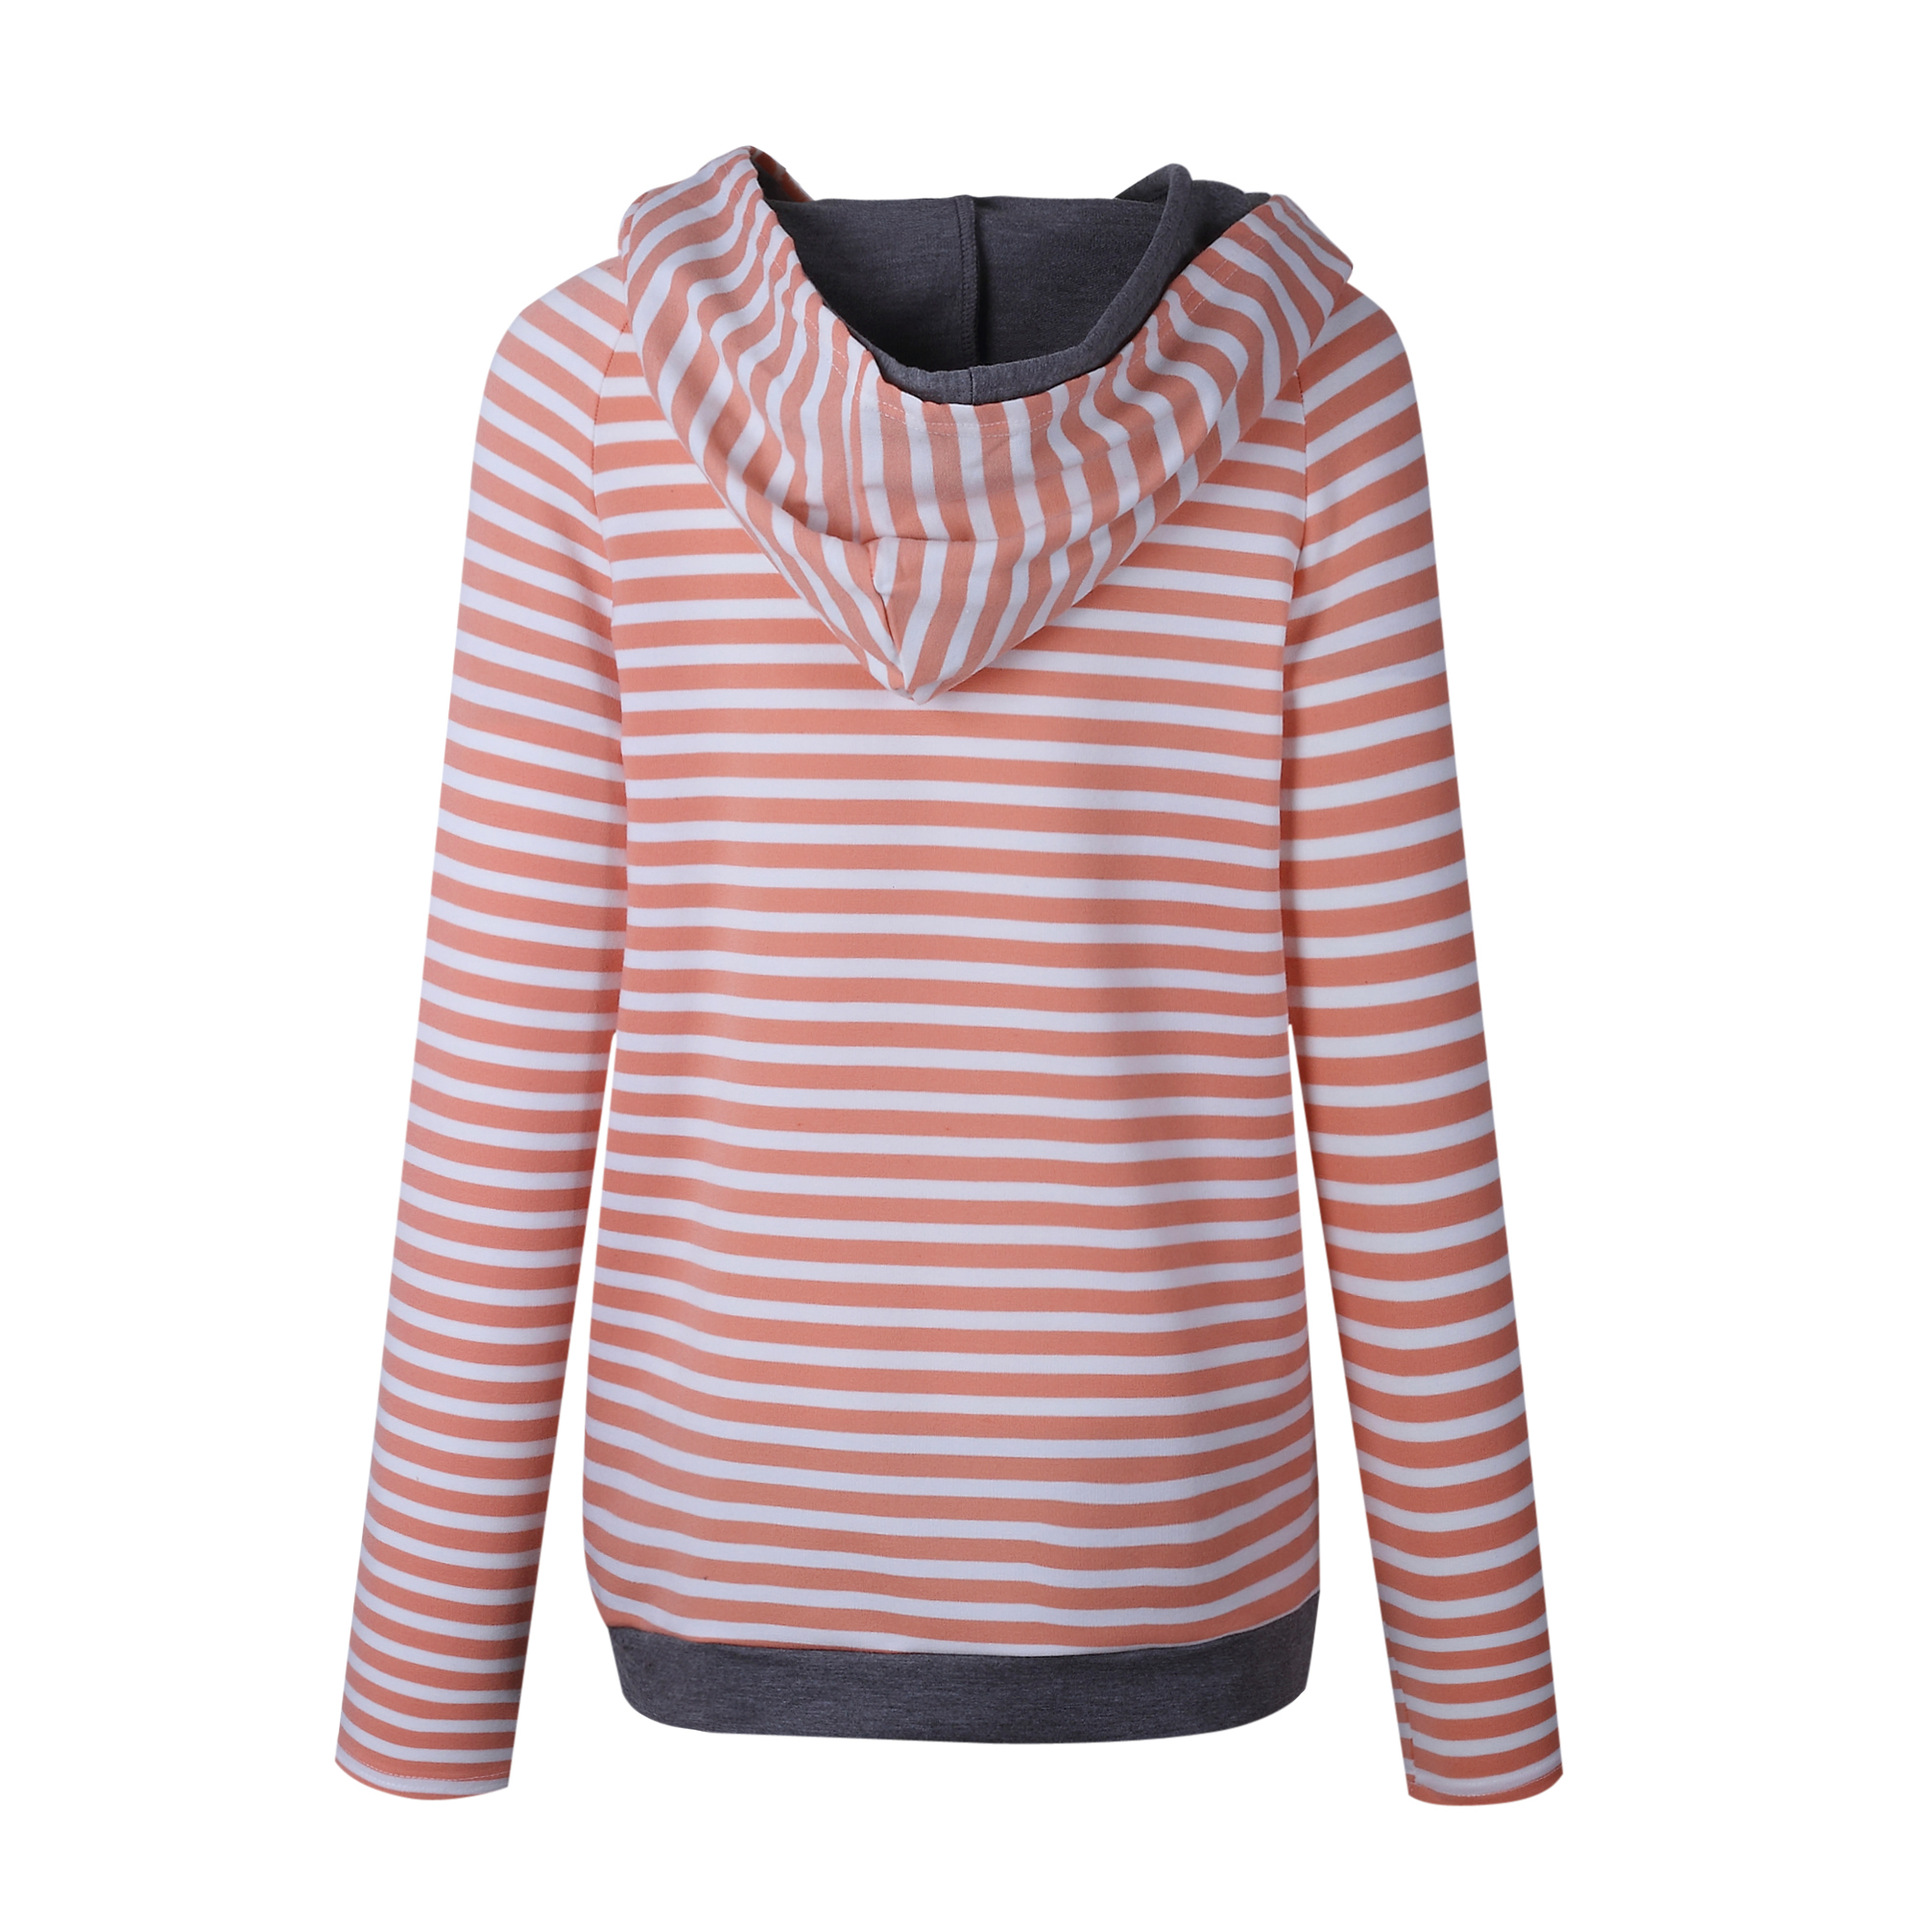 Women's Patchwork Striped Pullover Long Sleeve Hoodie, Tops With Pockets, Hooded Sweatshirt 7